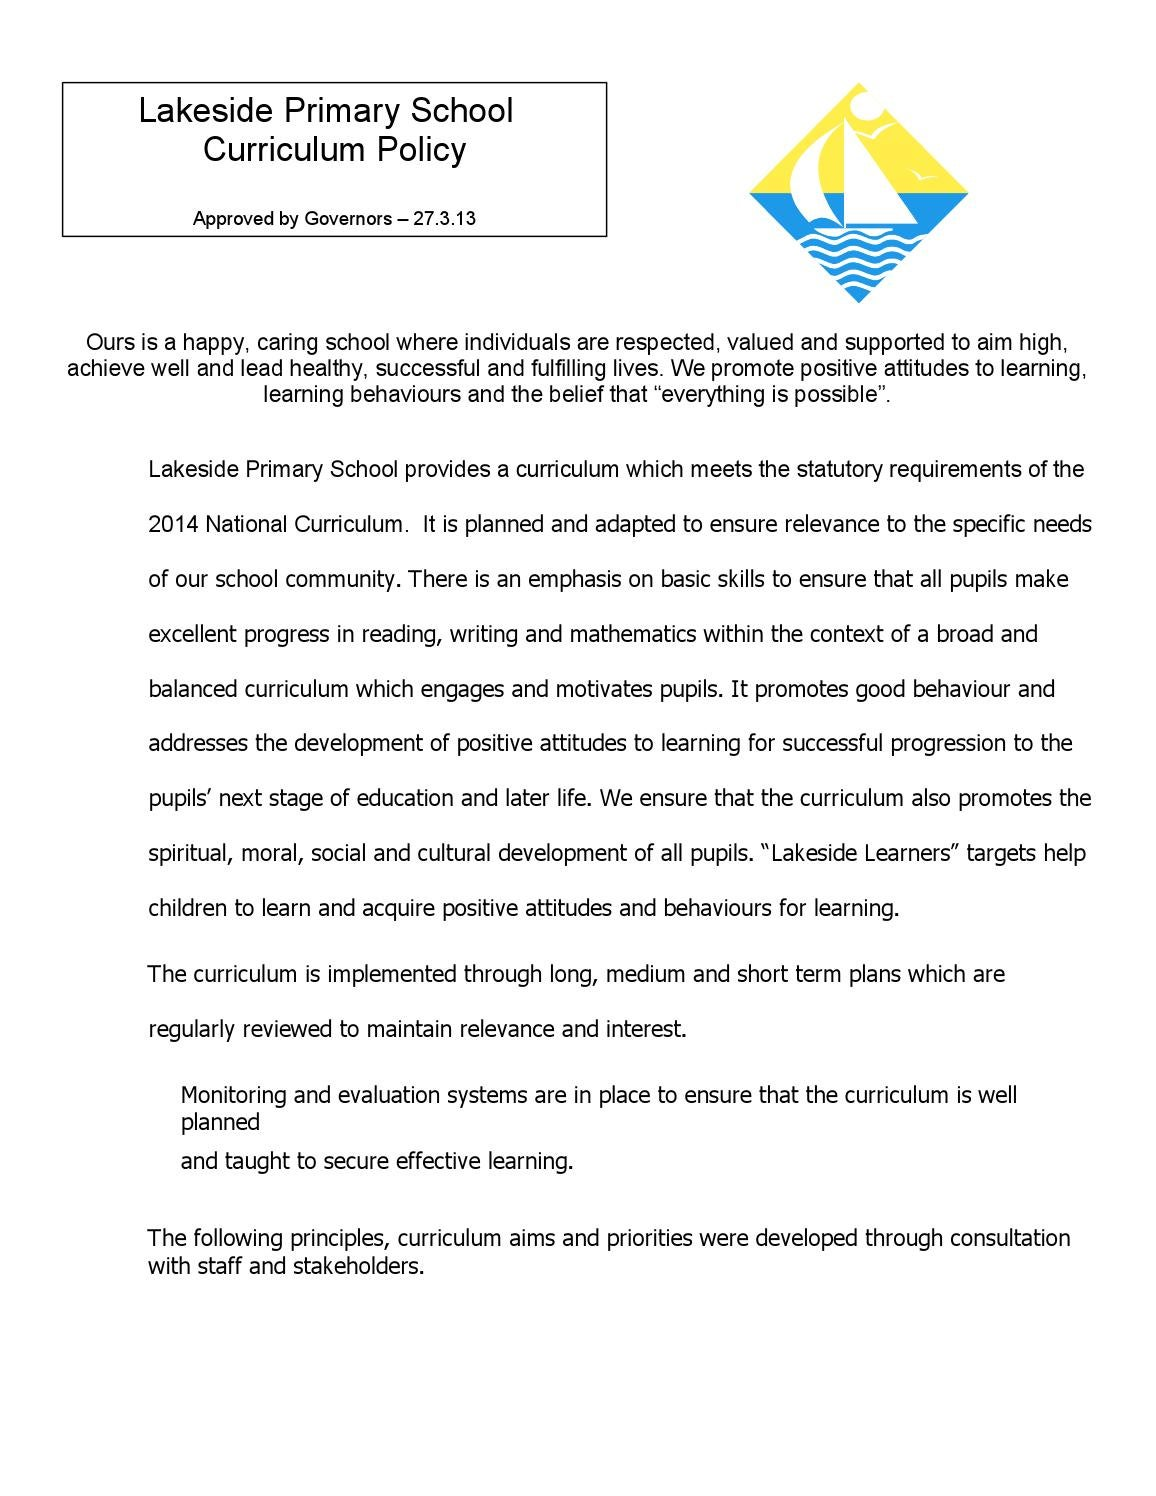 Curriculum Policy Rev Nov 2014 By Lakeside Primary Issuu